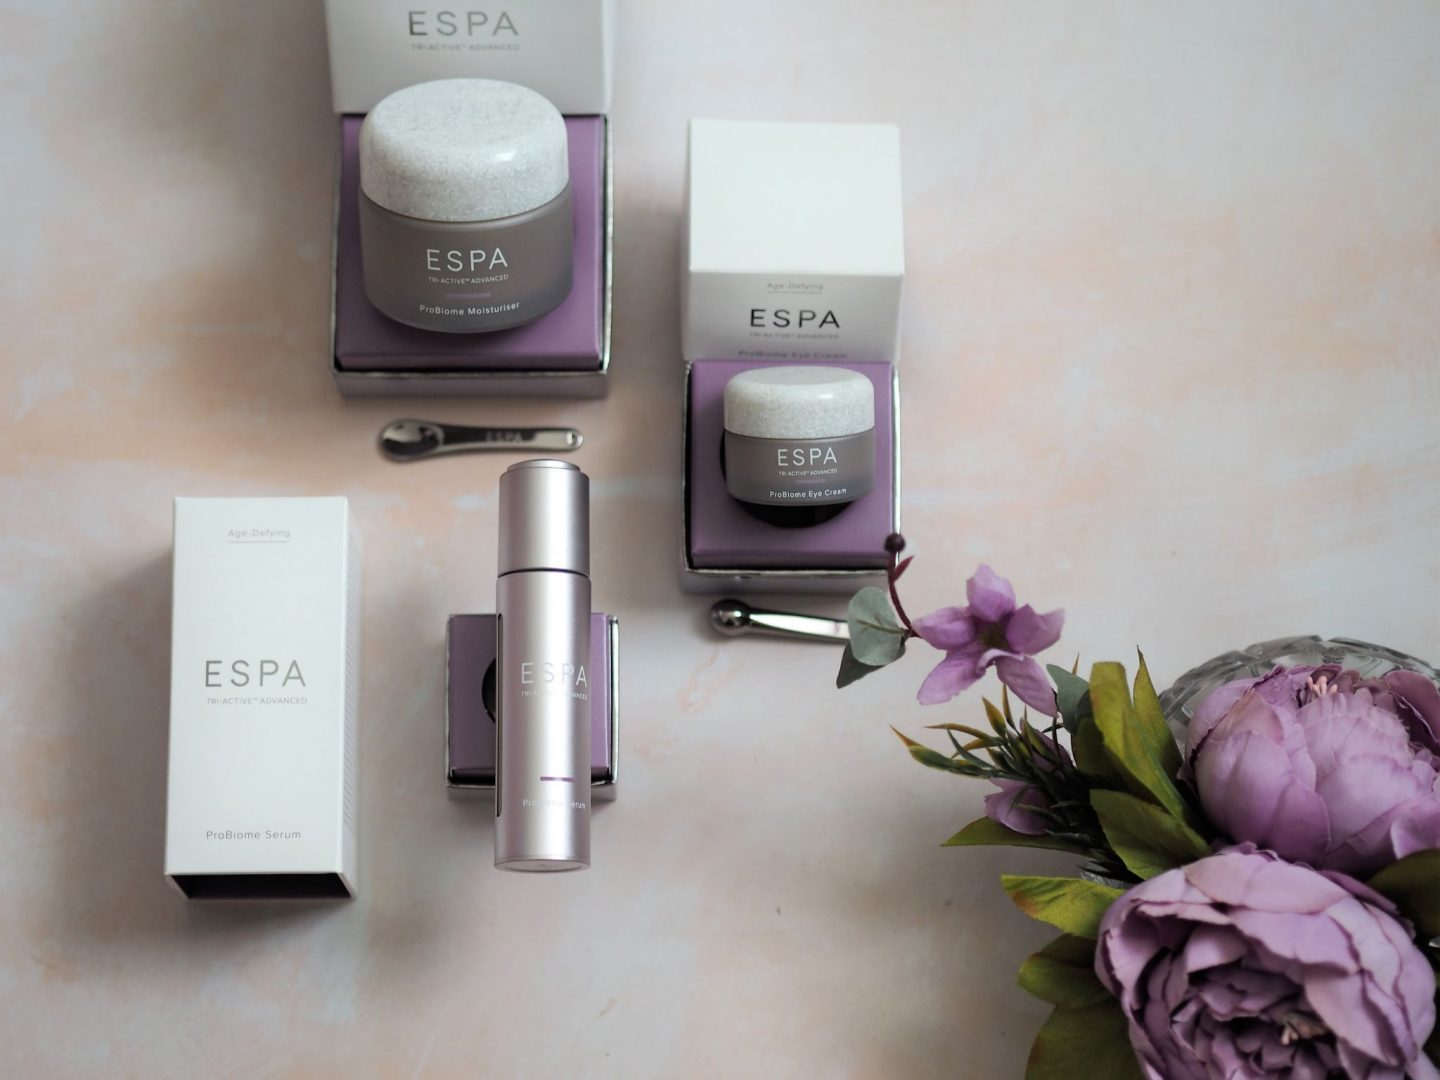 You may well remember my delight at receiving the gift set from Espa a while back. I featured it in one of my weekly edits. This was some time ago!